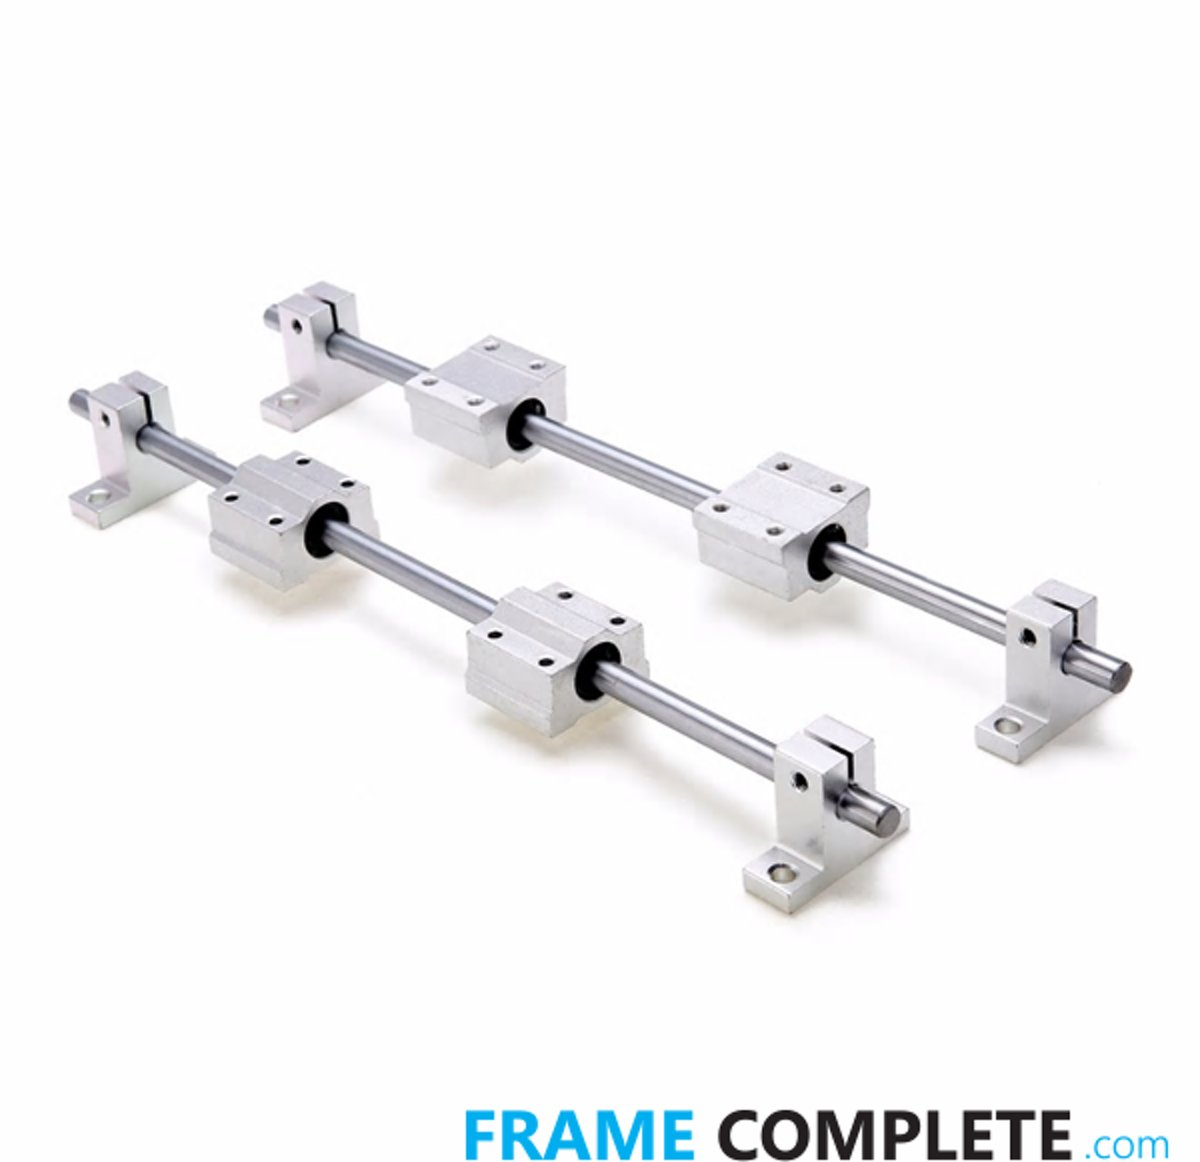 Lineaire Rail 8mm As voor 3D printer of CNC machine